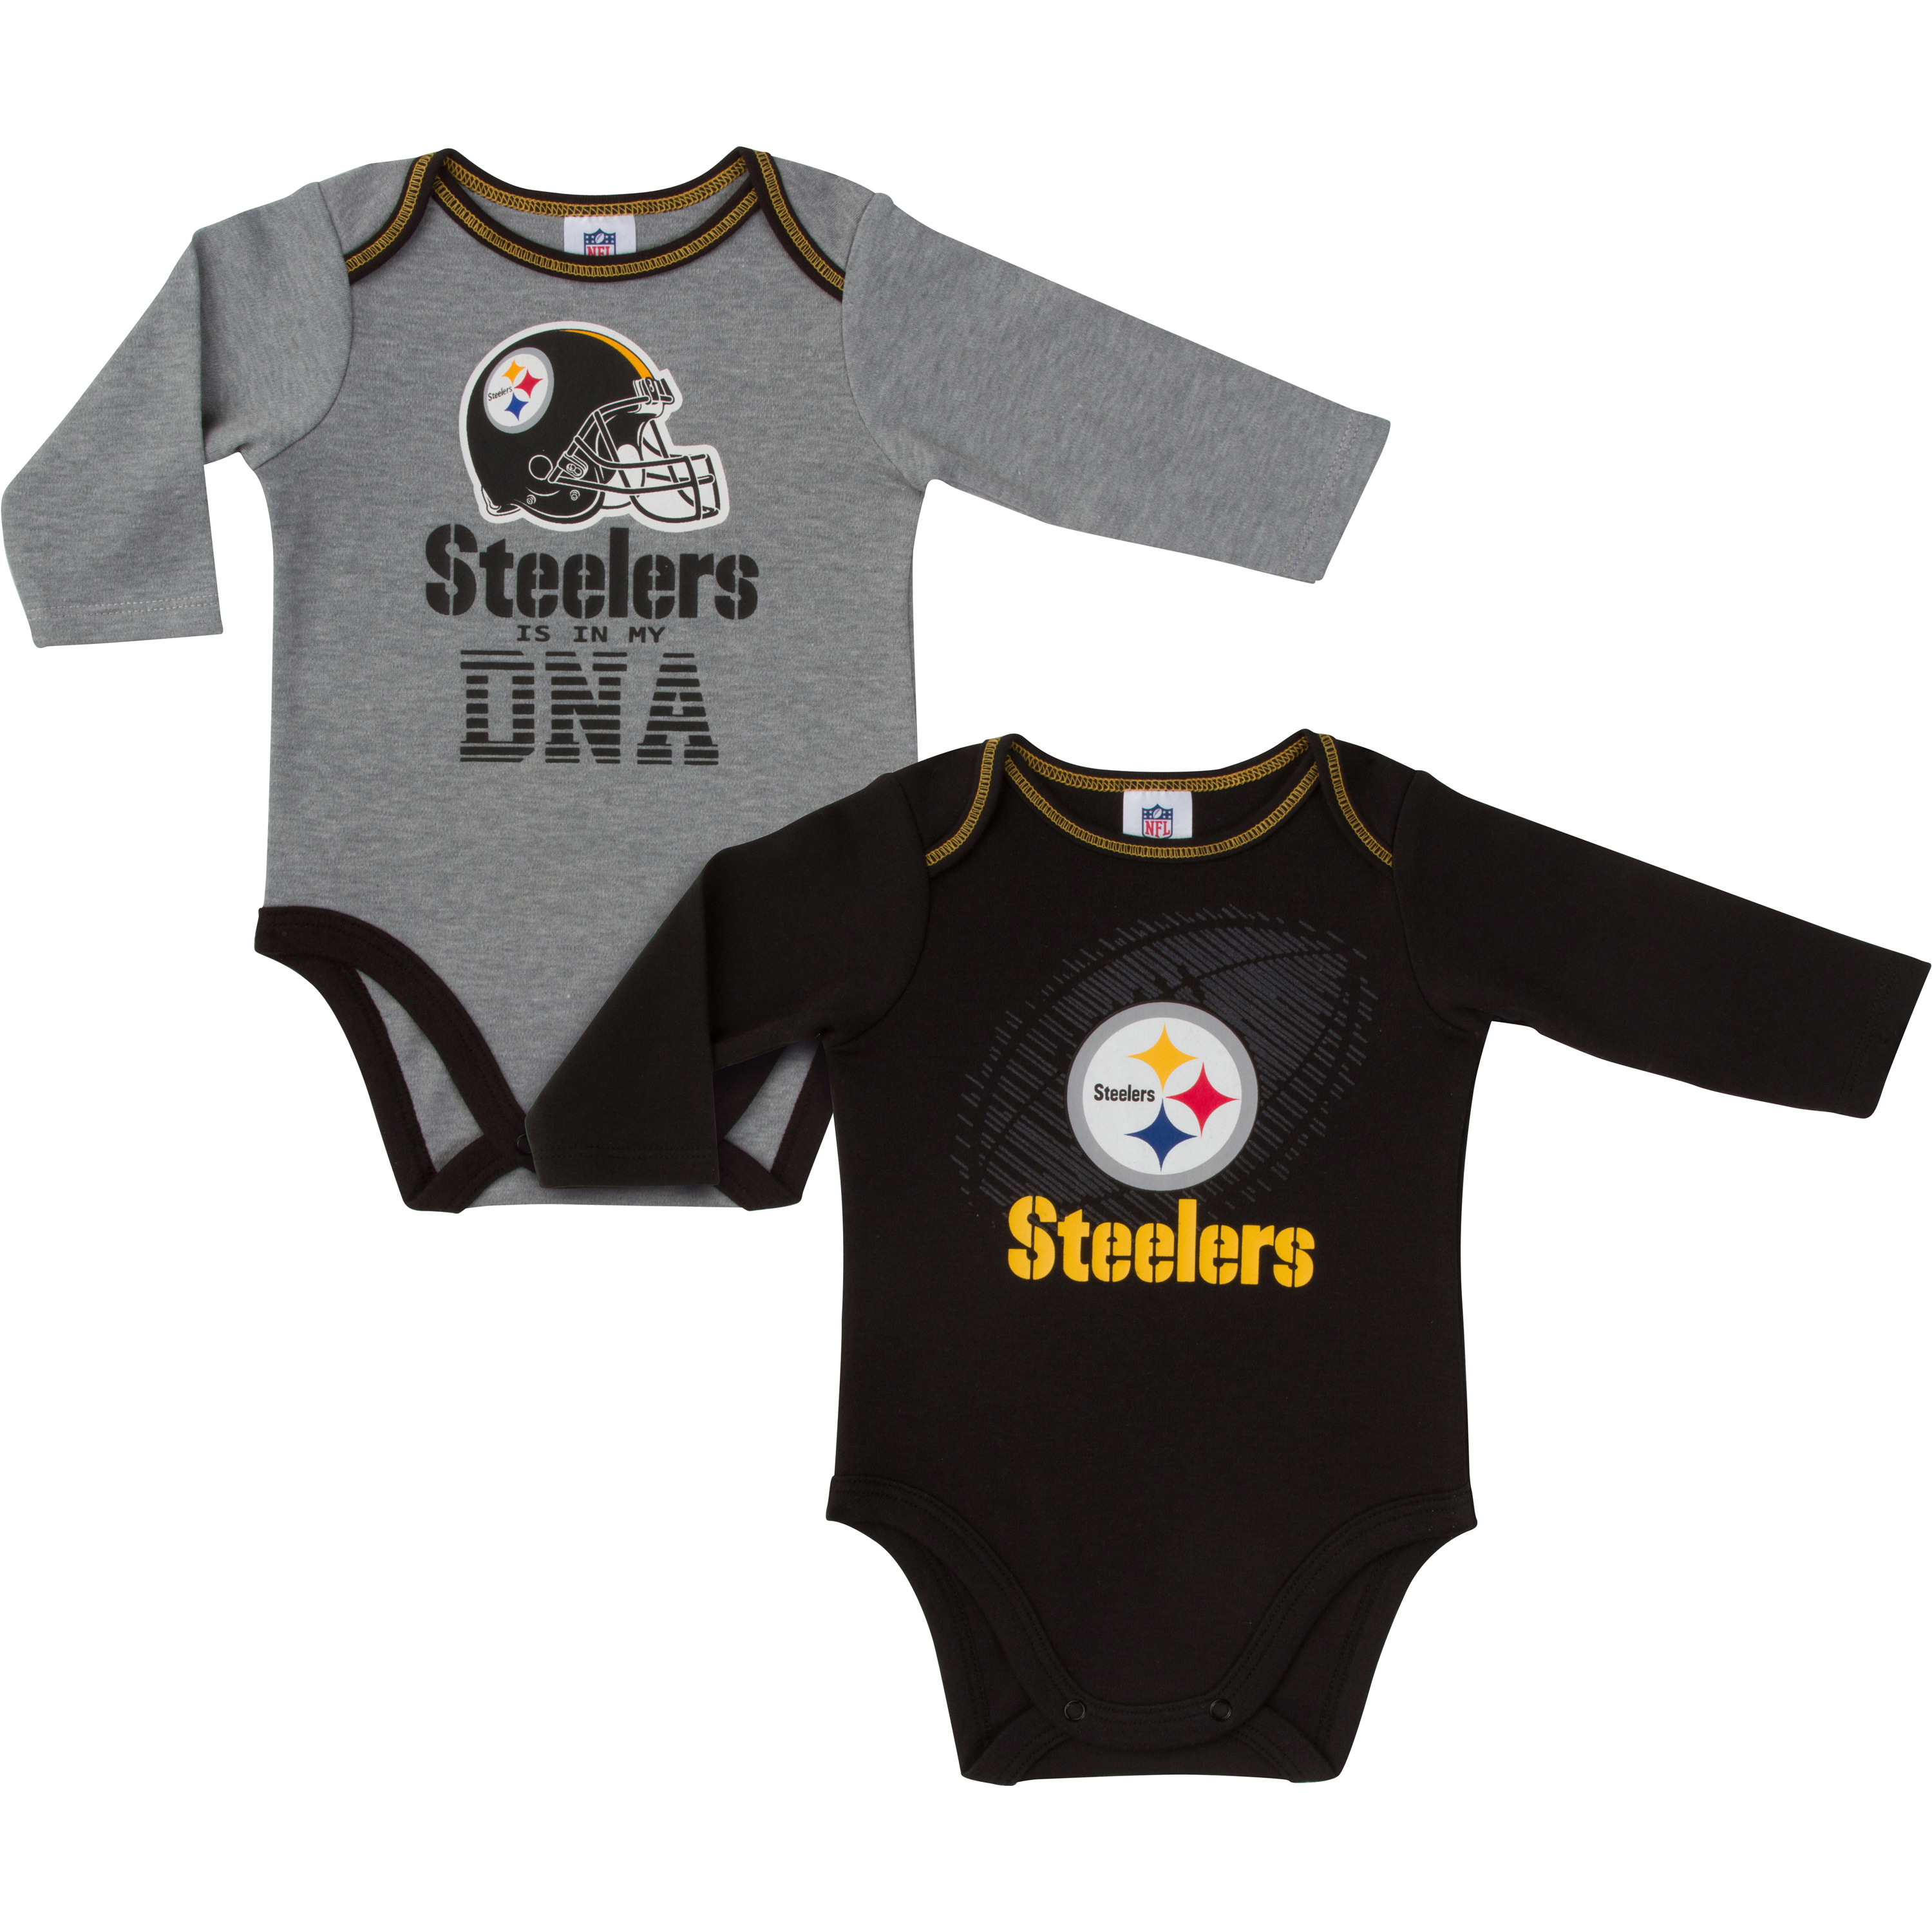 steelers-nfl-baby-longsleeve-bodysuit-dna-black-grey-official